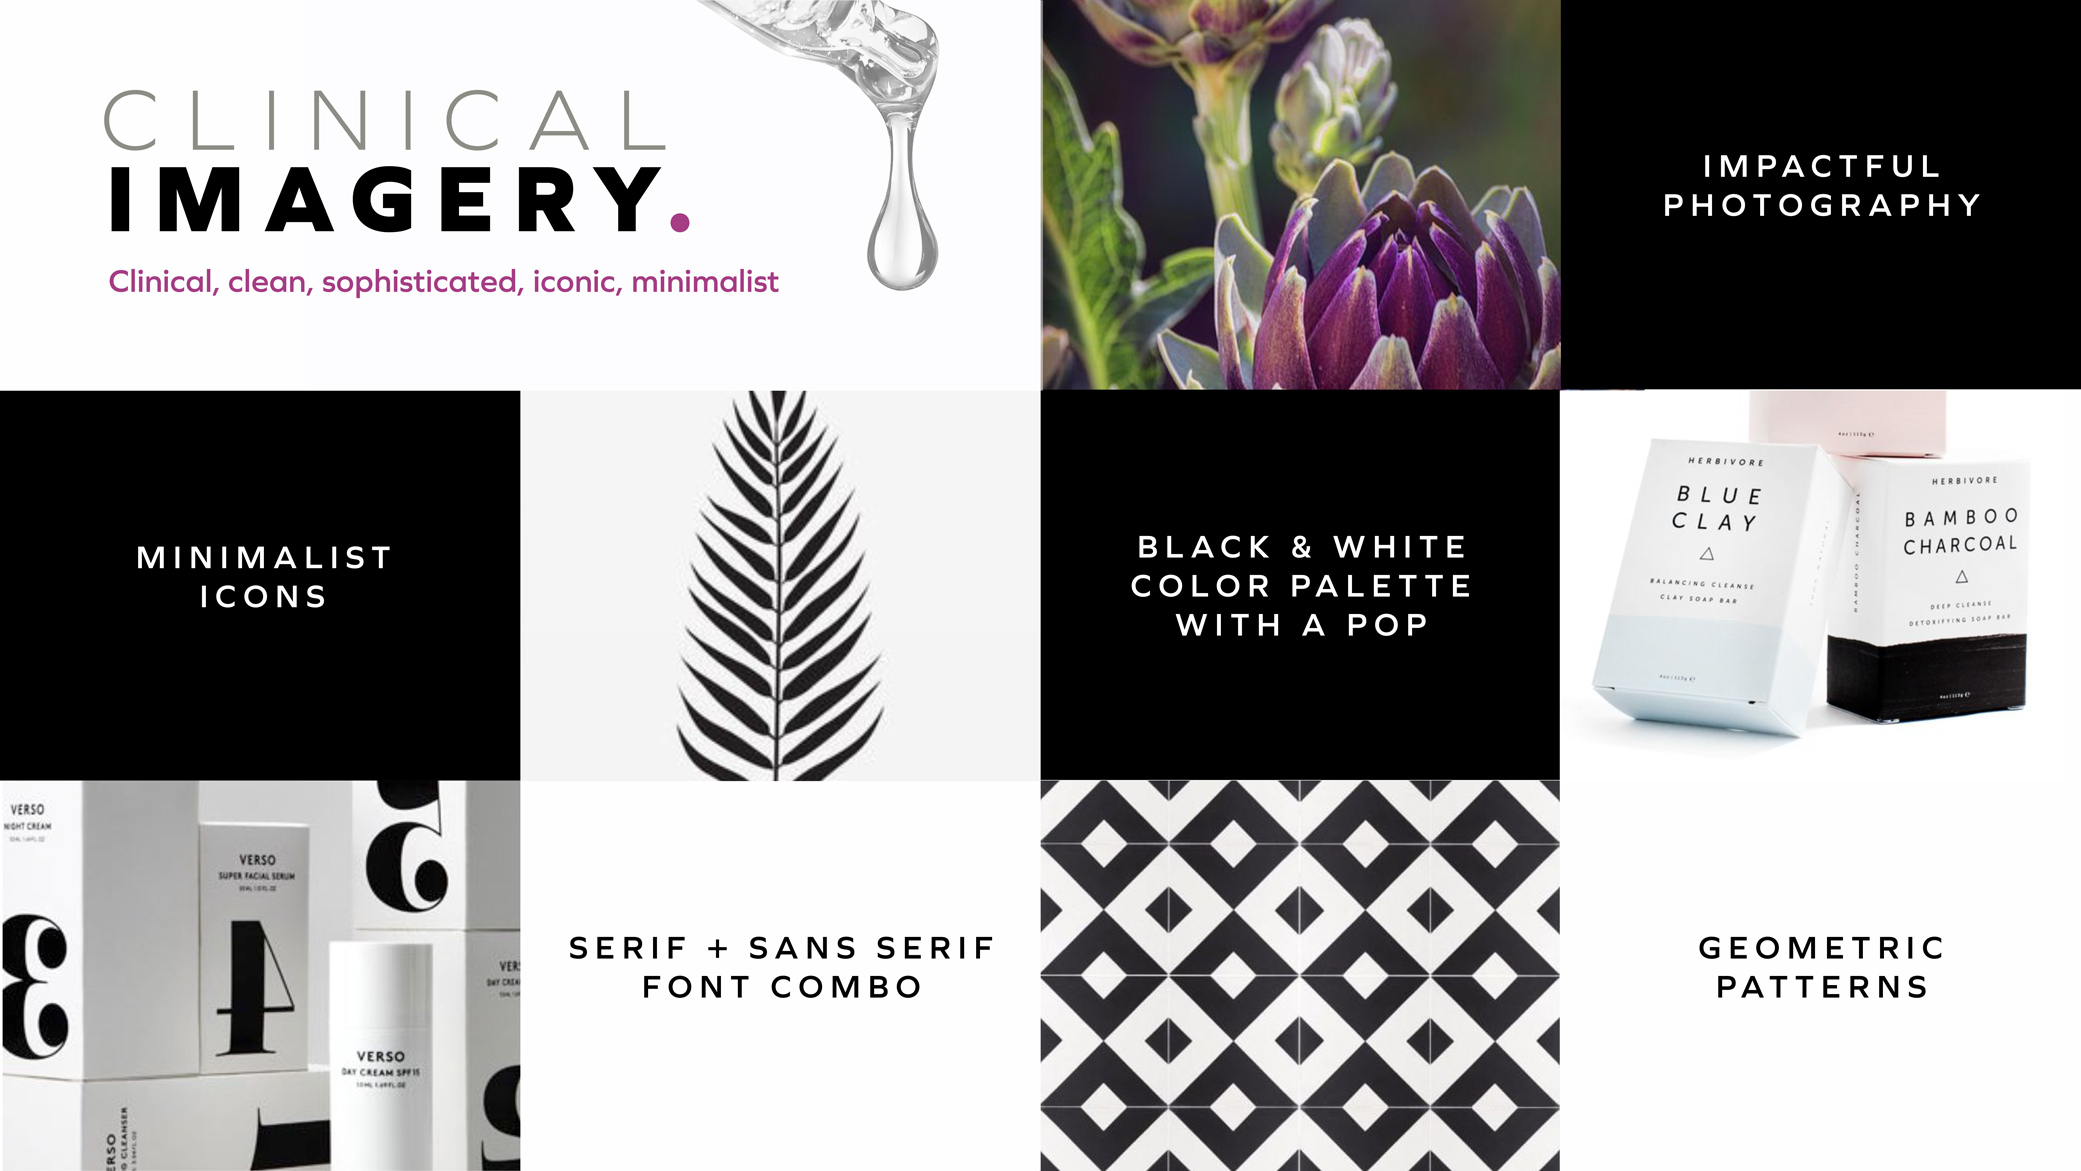 Alkaline Herb Shop mood board slide showcasing clinical imagery, fonts, color selections, textures, patterns, and icons.